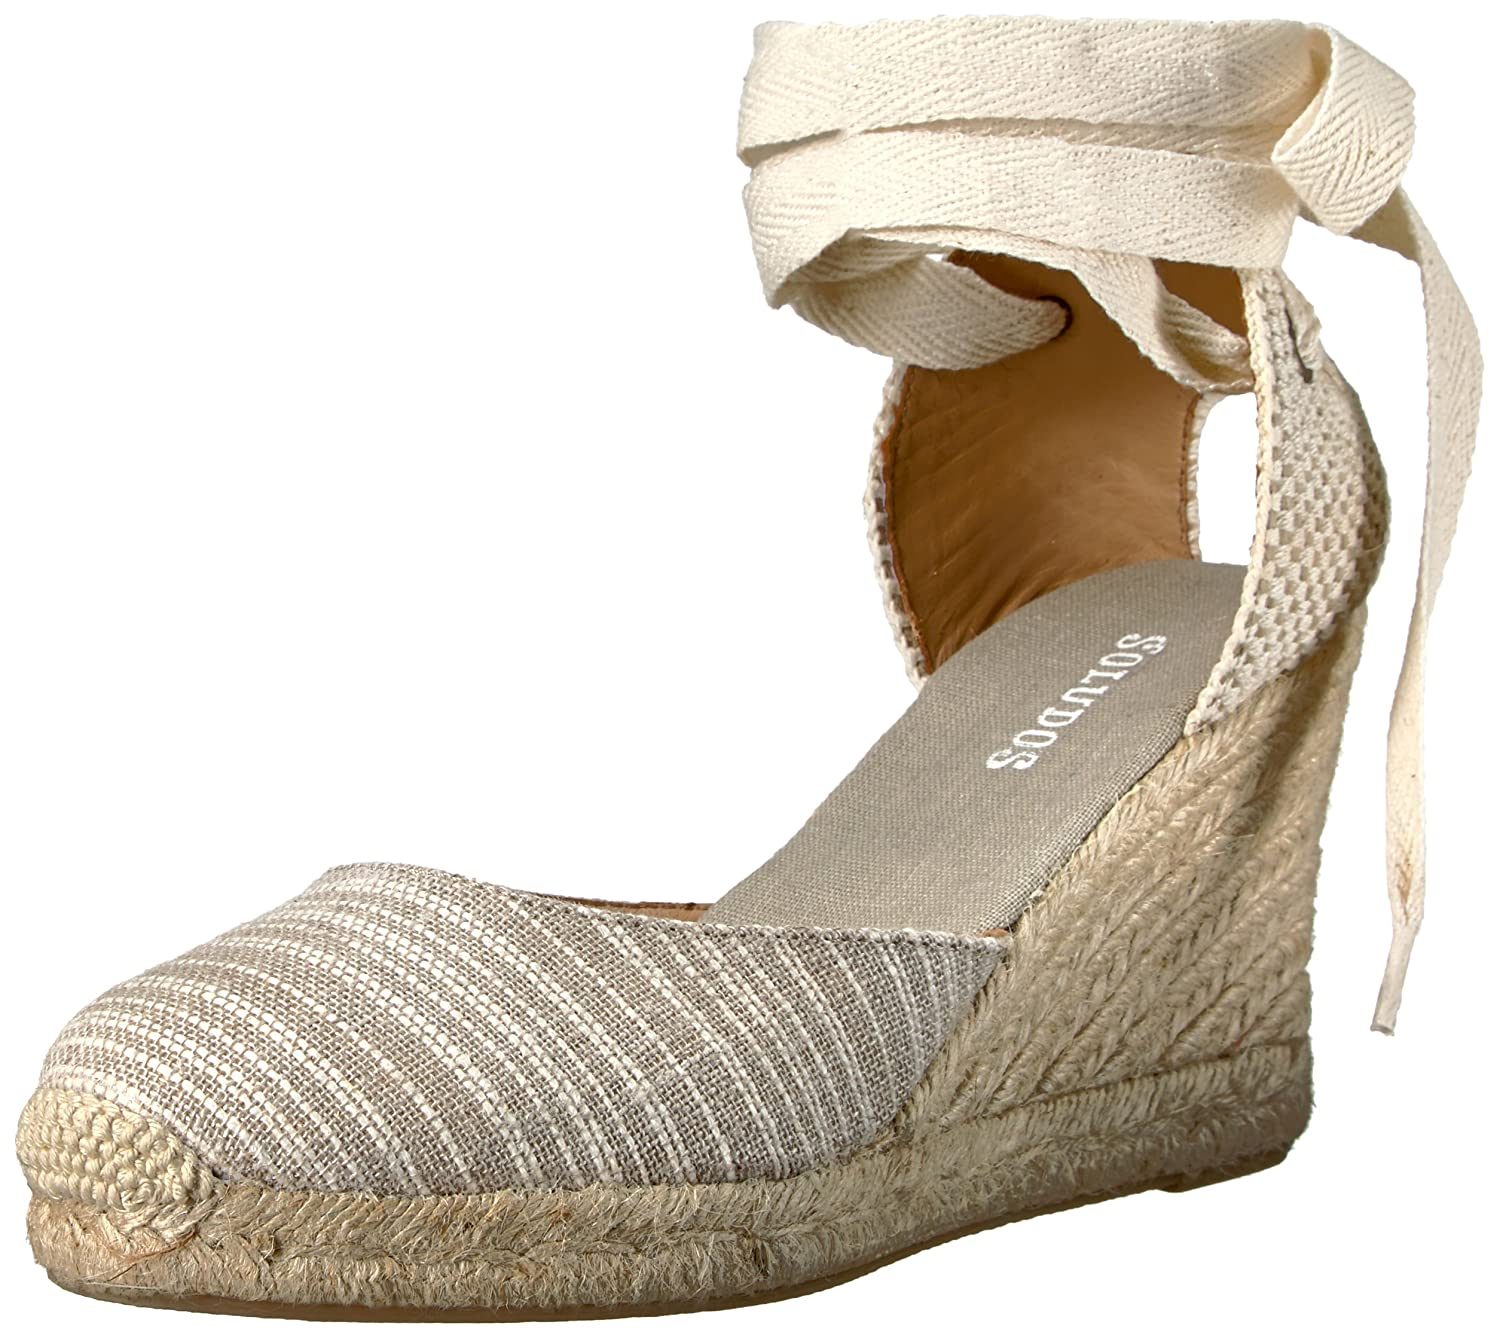 Soludos Women's Striped Tall (90mm) Wedge Sandal B01MZ6FY9V 8.5 B(M) US|Natural